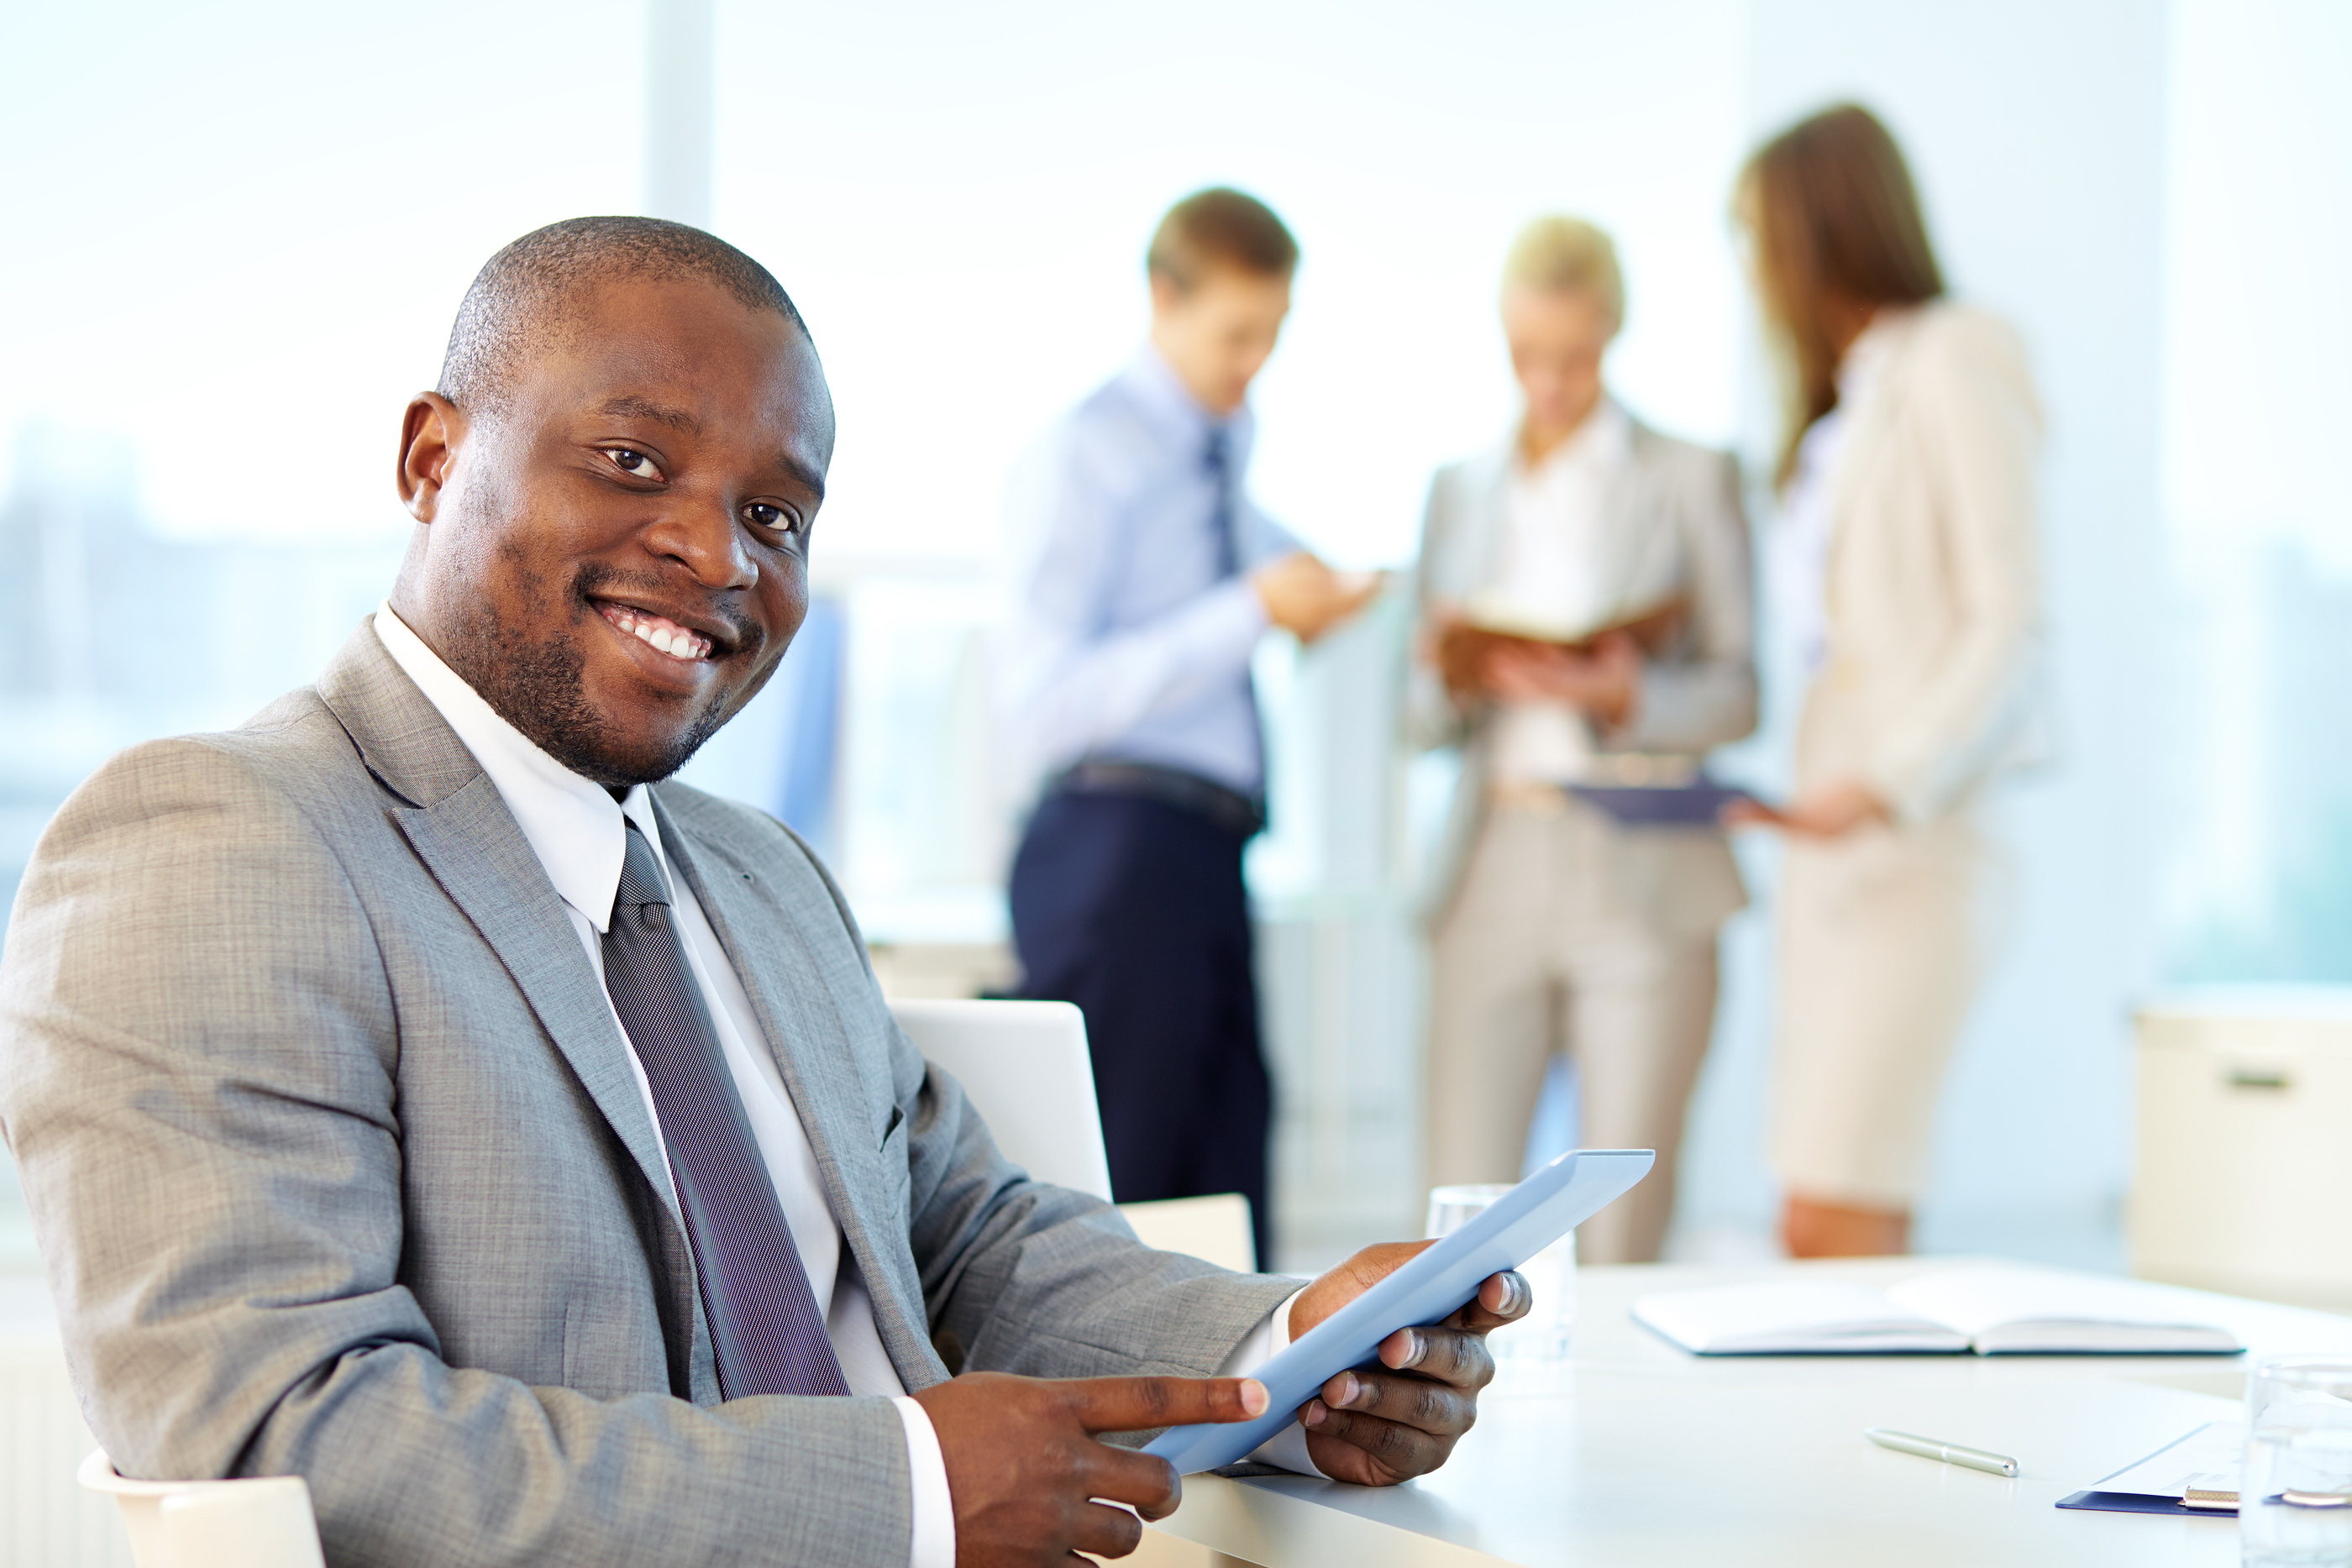 bigstock-Portrait-of-happy-leader-with-44709070